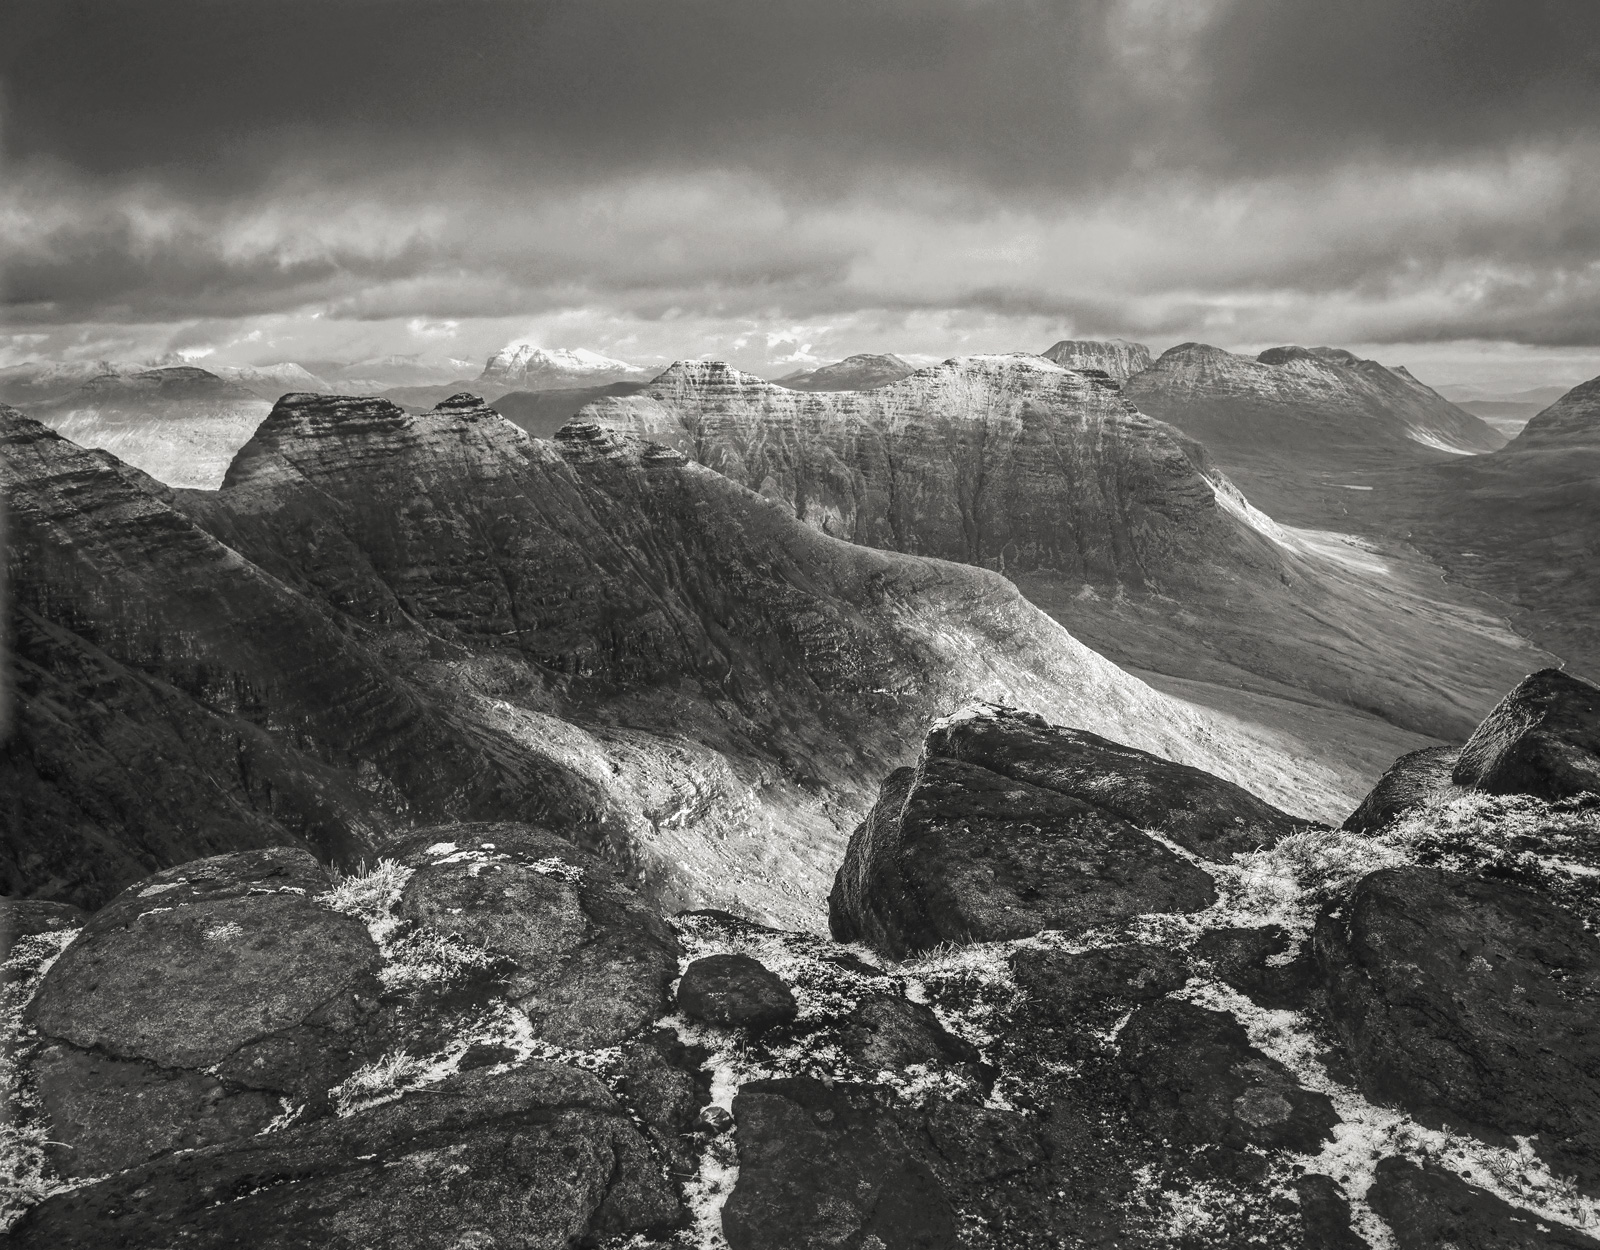 Of all the places that thrill me most being high up on the Scottish mountains in dramatic weather is probably my absolute favourite...